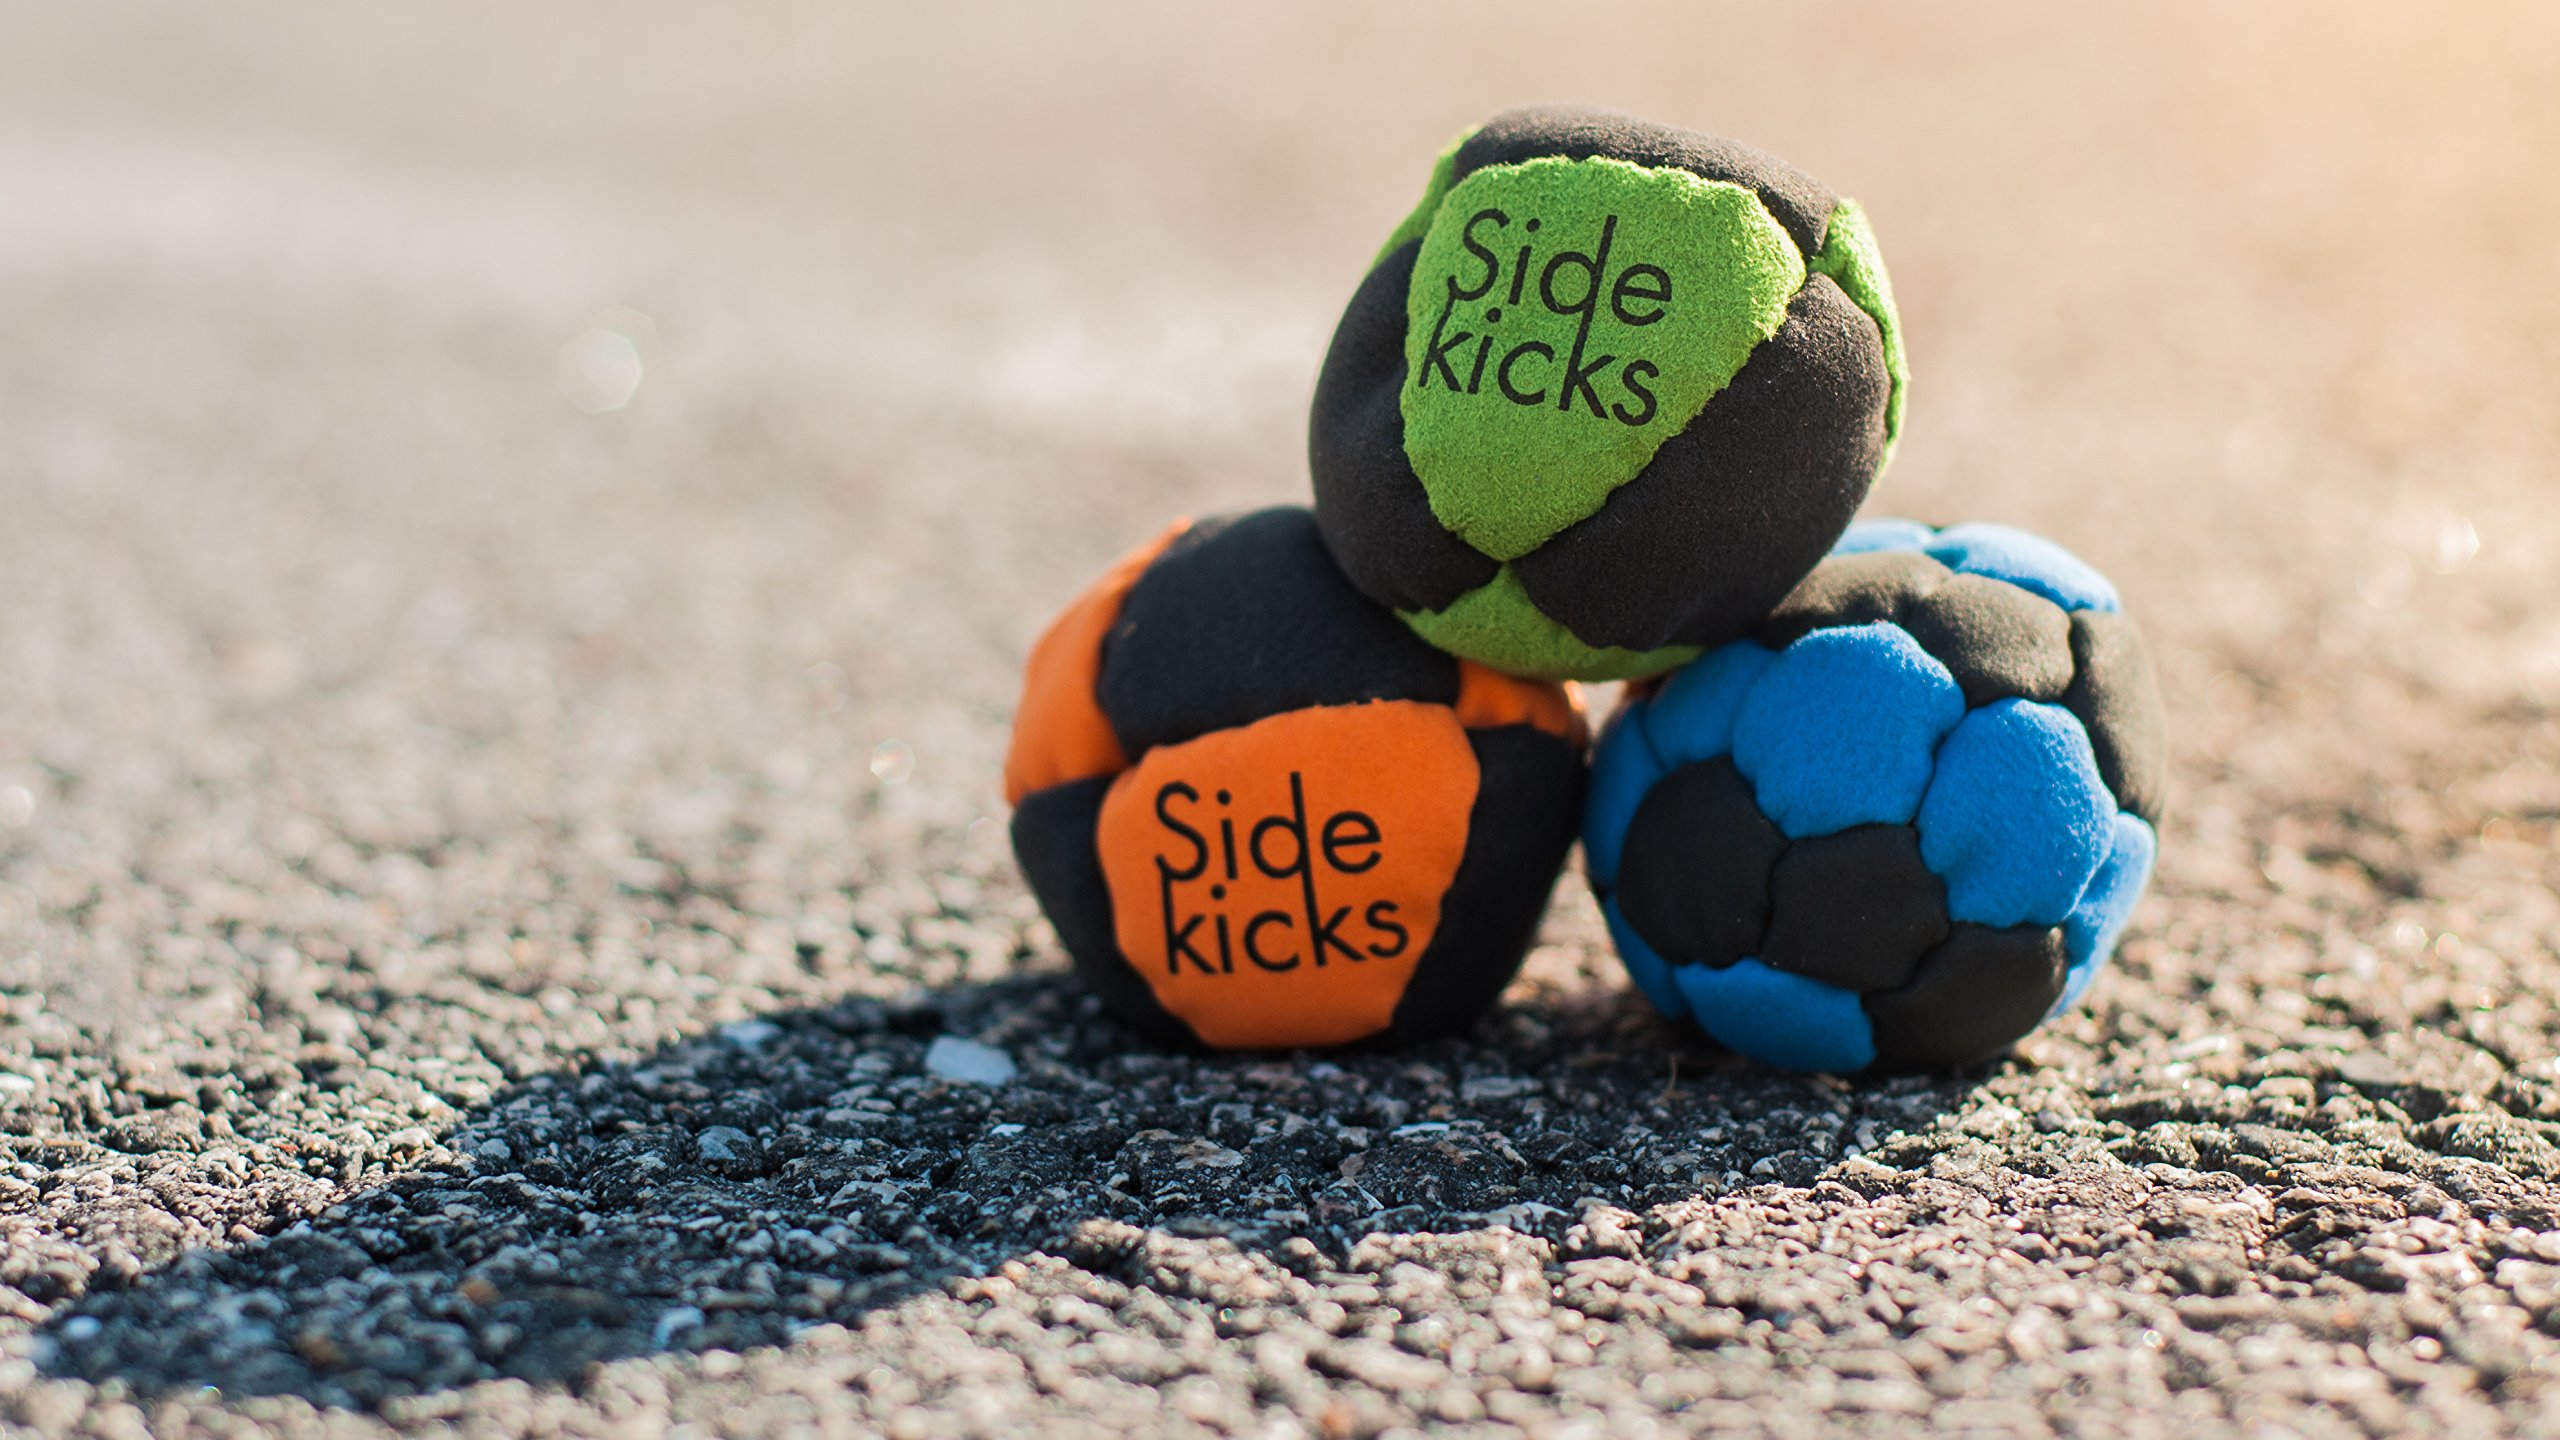 Sidekicks Hacky Sack - Classic Sand Filled Footbag   Best for Dirtbag Practice, Juggling Practice Hand Stitched Synthetic Suede Sand Hacky Sack Dirt Bag (Orange)